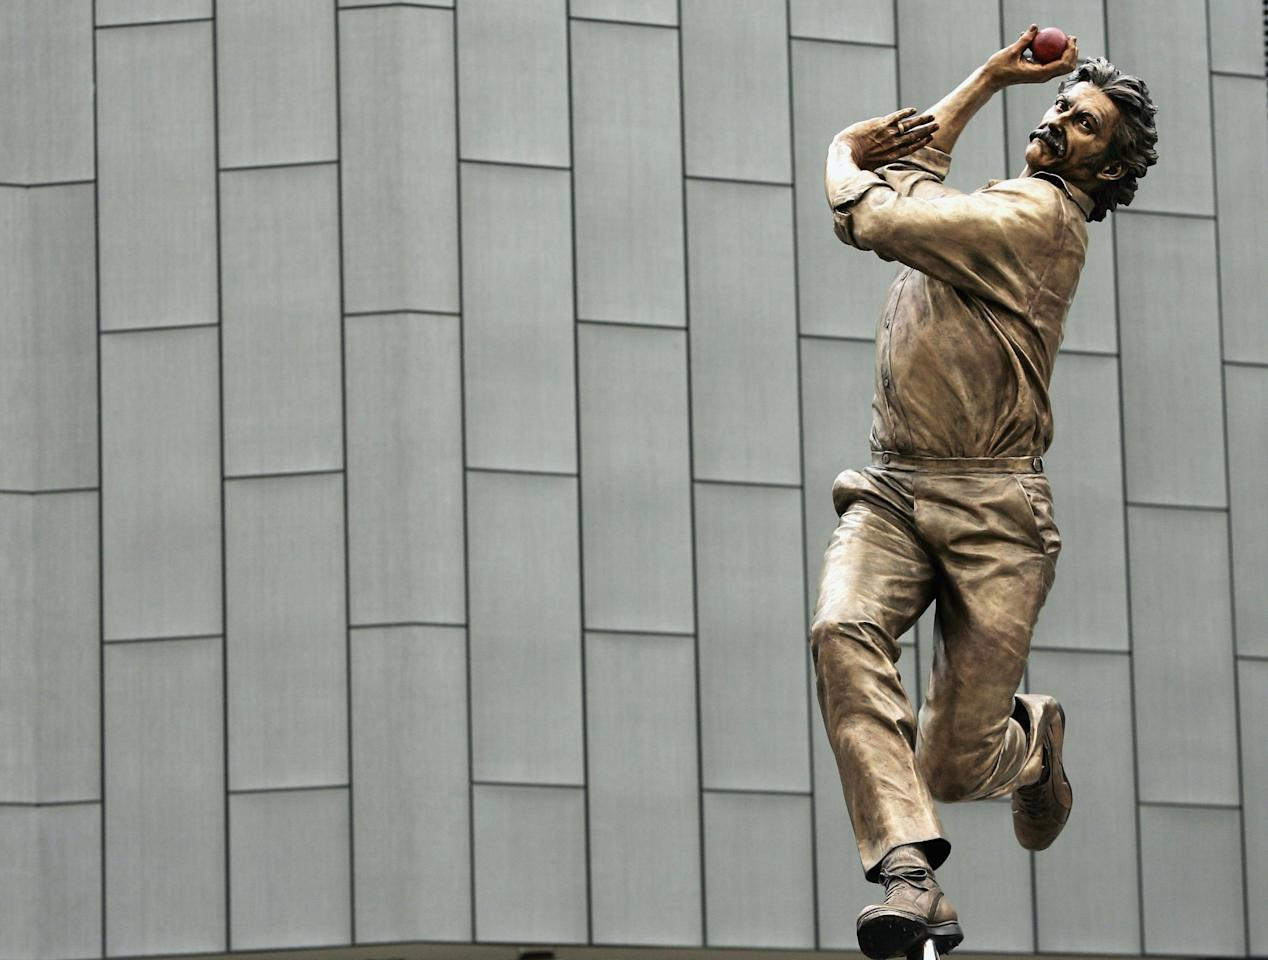 MELBOURNE, AUSTRALIA - DECEMBER 22:  A bronze statue of former Australian cricketer Dennis Lillee is seen in front of the MCG as part of the Walk of the Champions at the Melbourne Cricket Ground December 22, 2006 in Melbourne, Australia. Lillee retired in 1984 with a then record of 355 test wickets.  (Photo by Robert Cianflone/Getty Images)